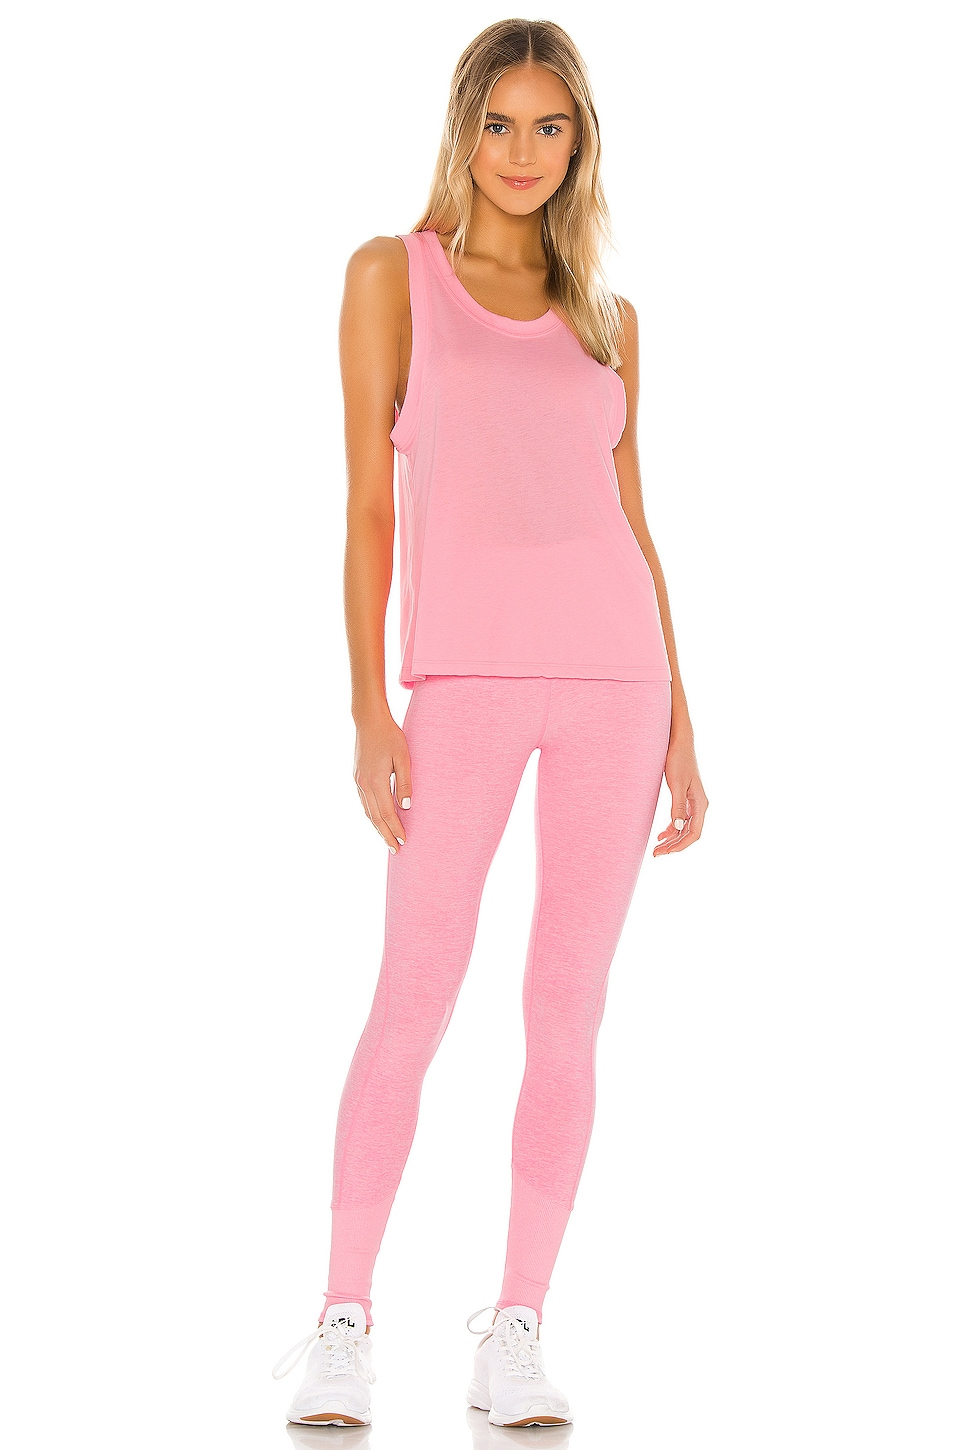 High Waist Lounge Legging, view 4, click to view large image.